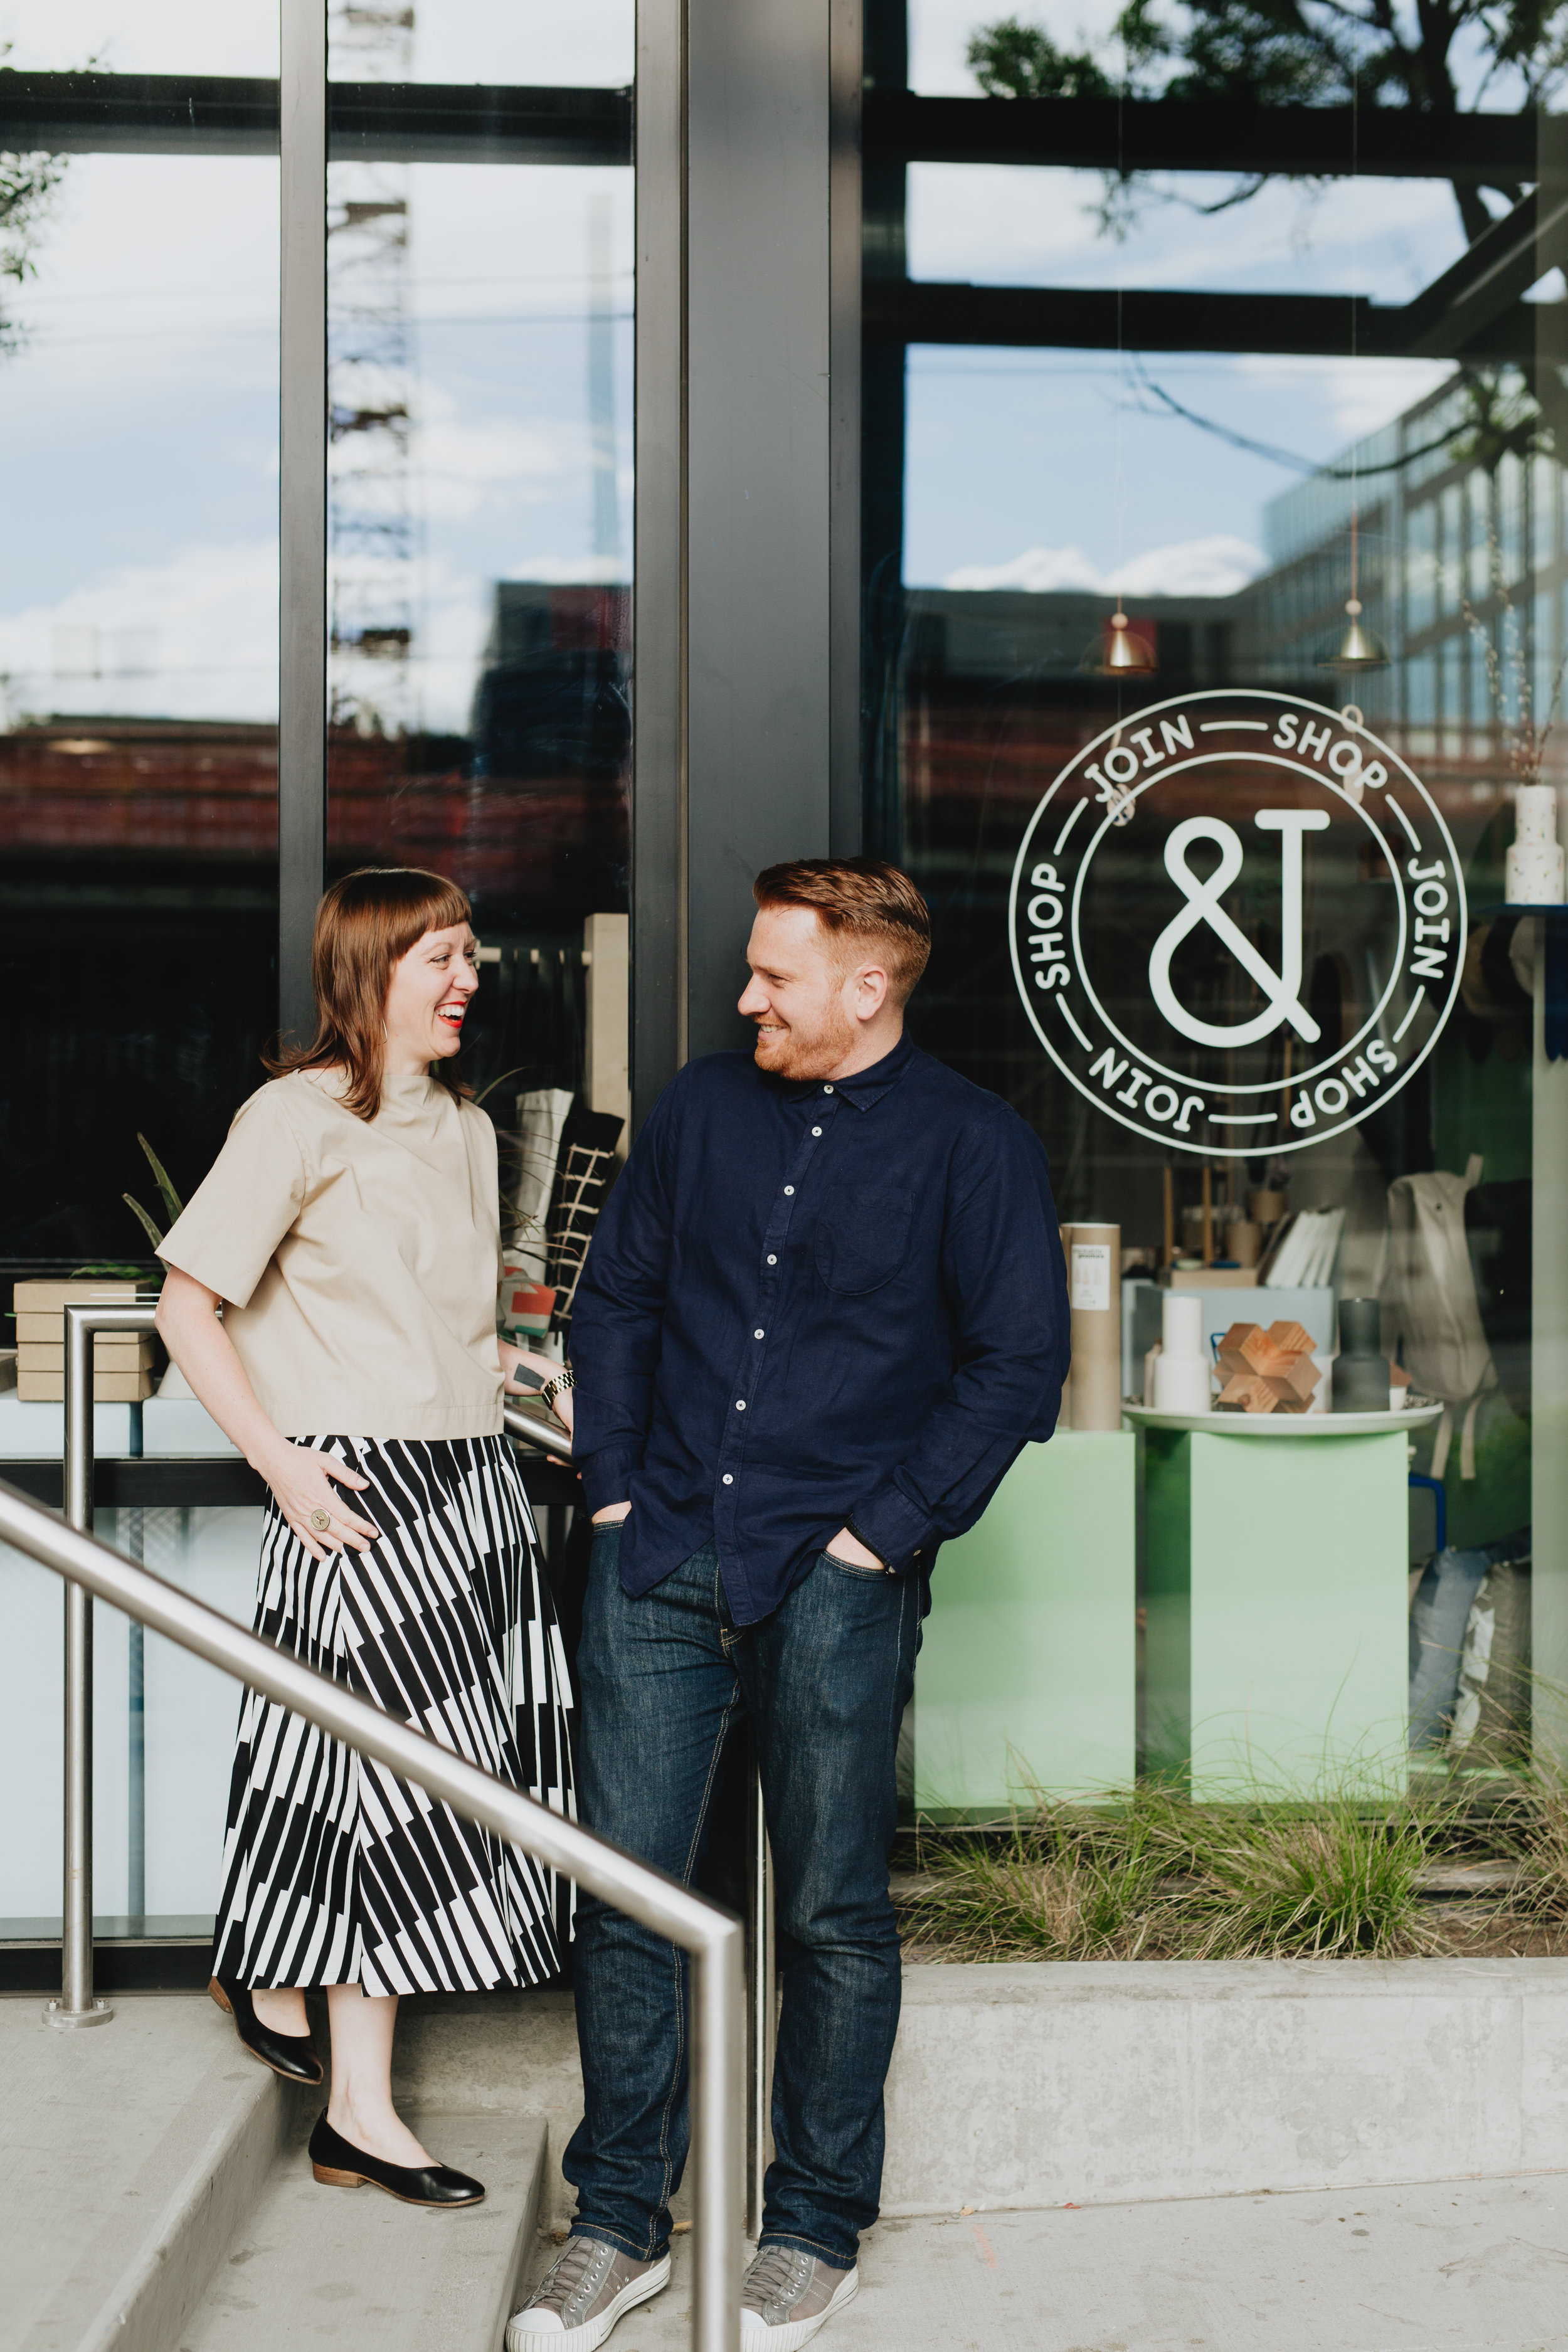 Join Design Shop Photos - A maker-friendly Small business photo story.